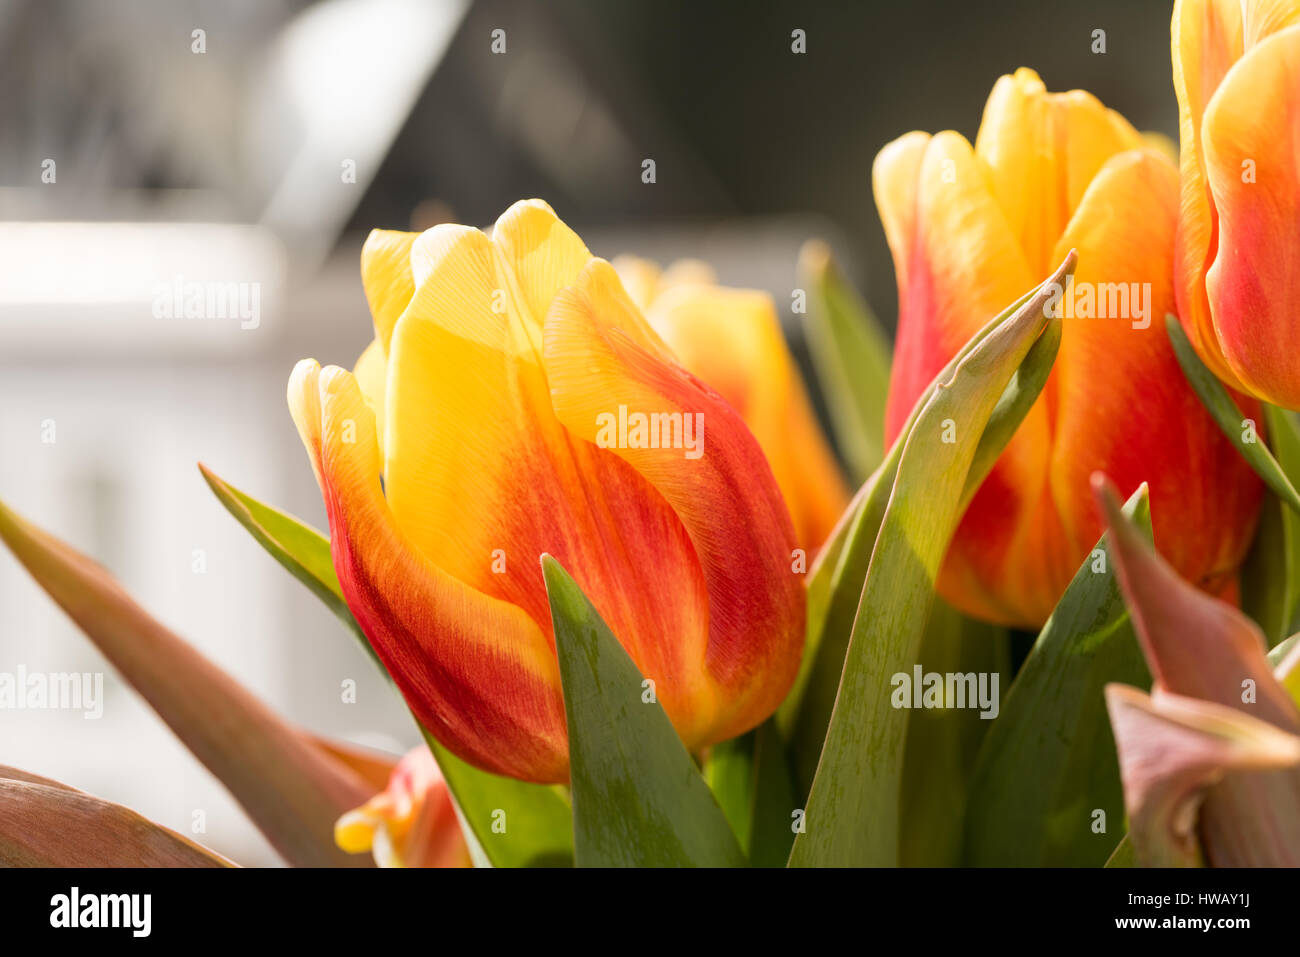 Orange Tulip Blossoms with green leaves in High Resolution - Macro - Stock Image